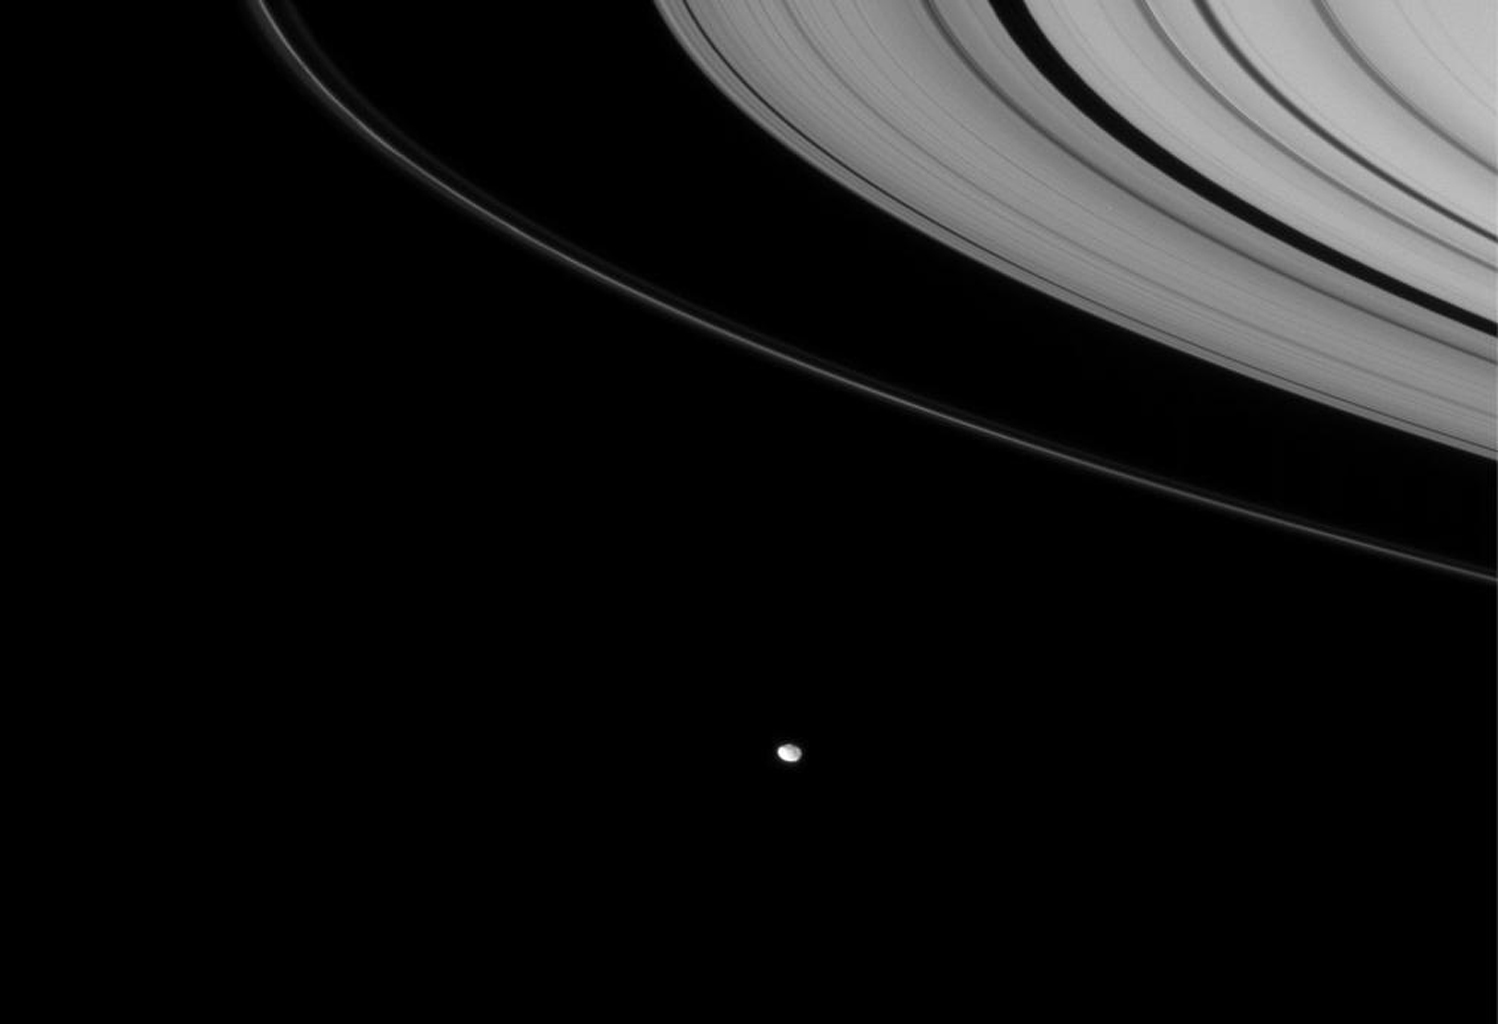 NASA's Cassini spacecraft looks down toward Janus, which hugs the outer edges of Saturn's rings. Janus orbits Saturn beyond the narrow core of the F ring in this image captured on Nov. 25, 2007.